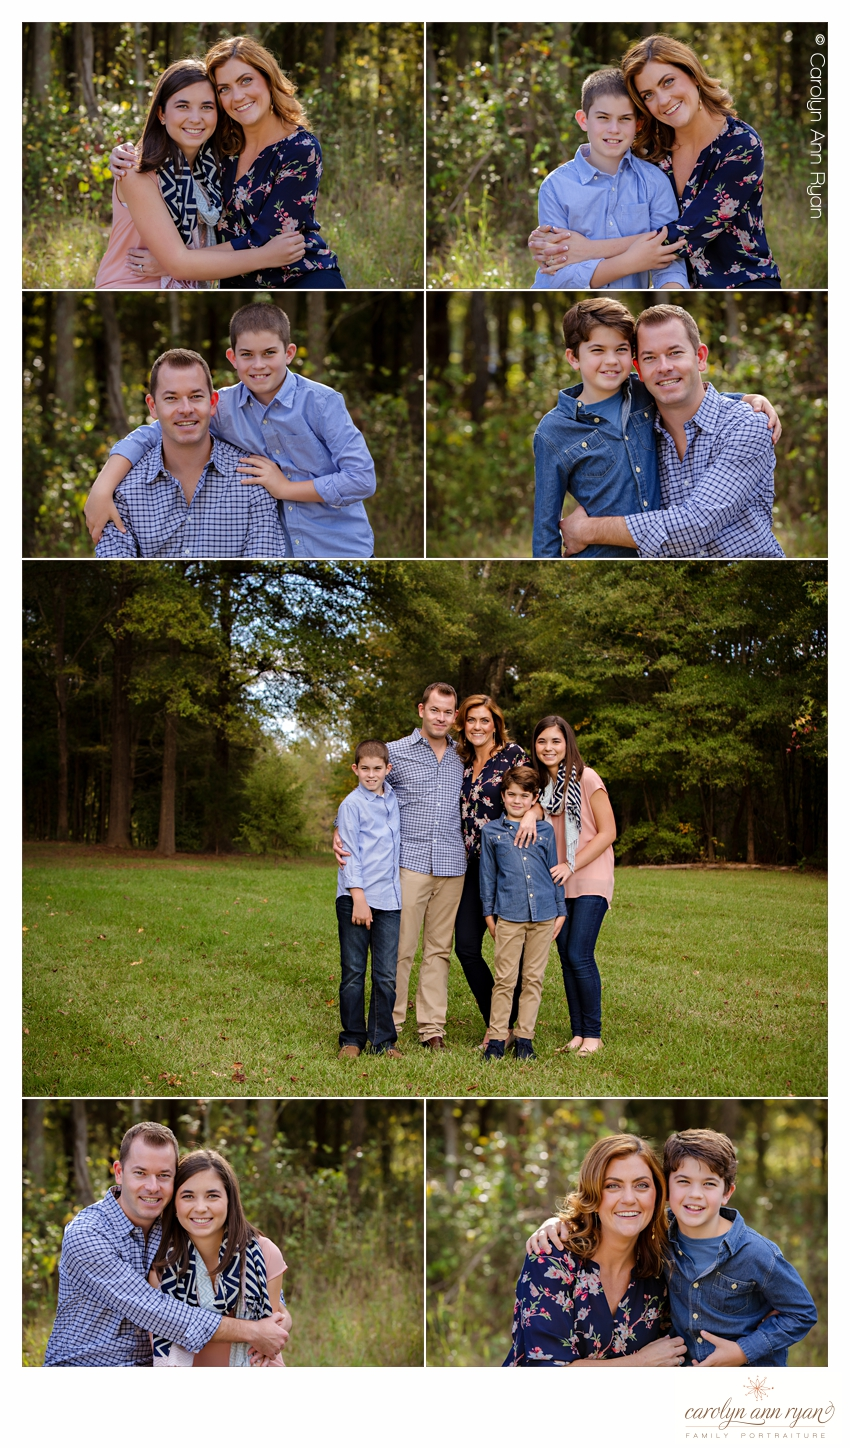 Marvin Family Photographer Carolyn Ann Ryan photographs classic family portrait session